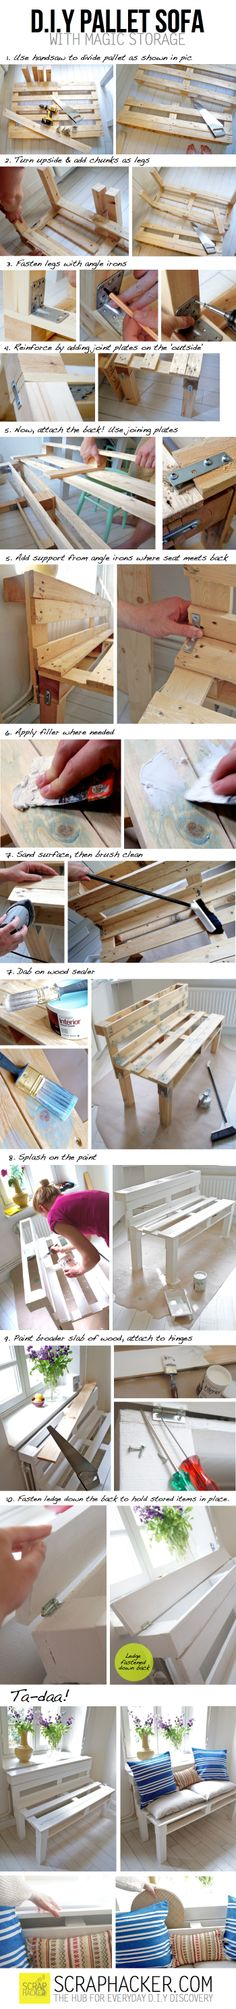 DIY : Pallet Sofa - Recyclart